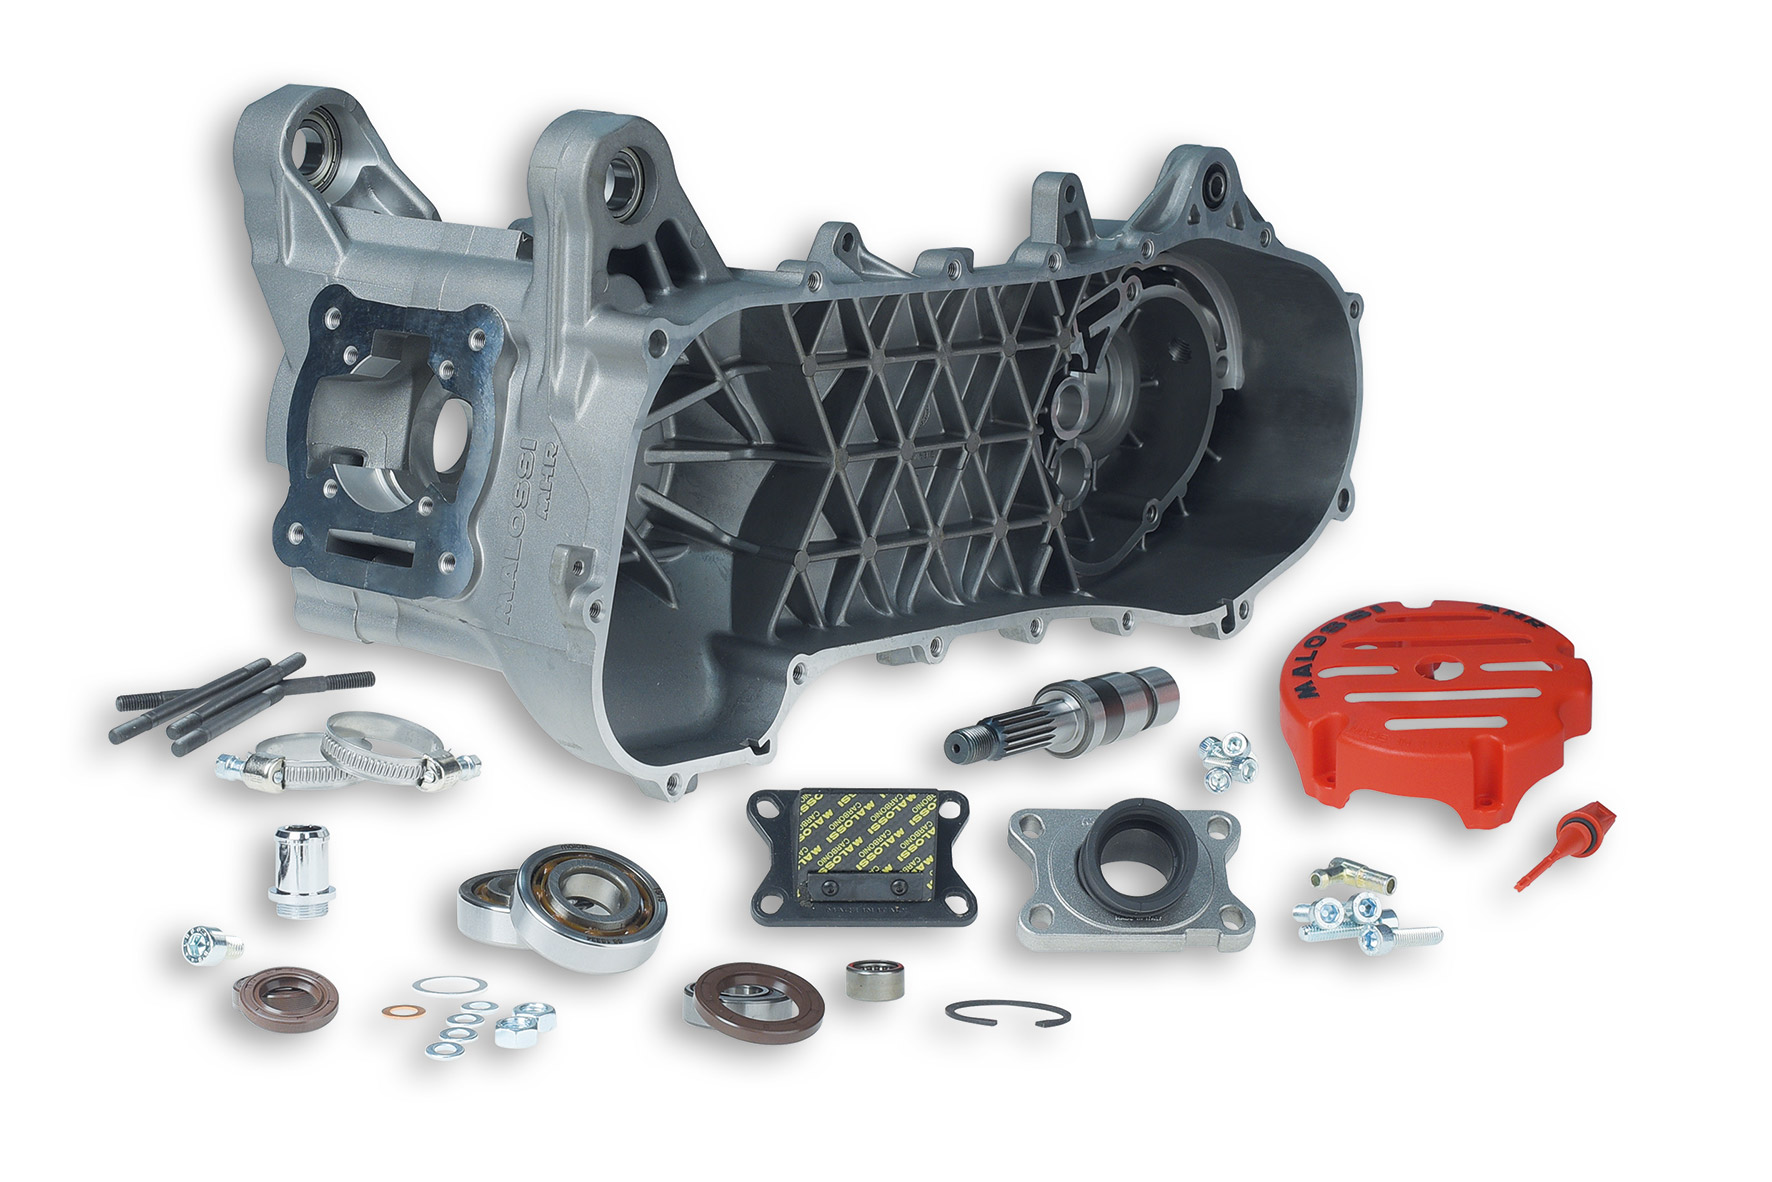 Carter motore completo MHR C - one (per motore YAMAHA)